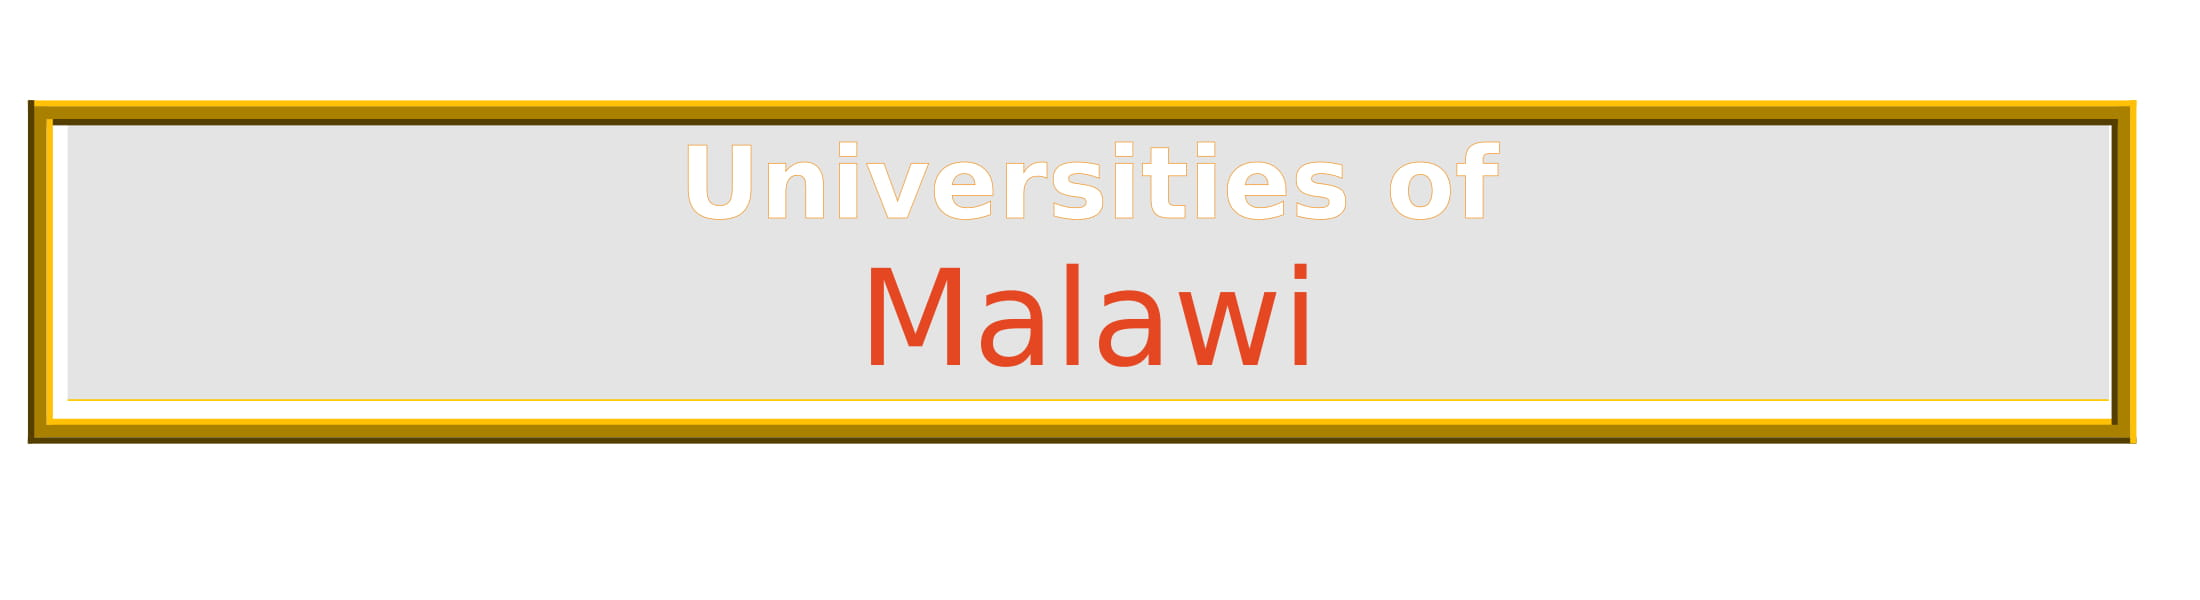 List of Universities in Malawi